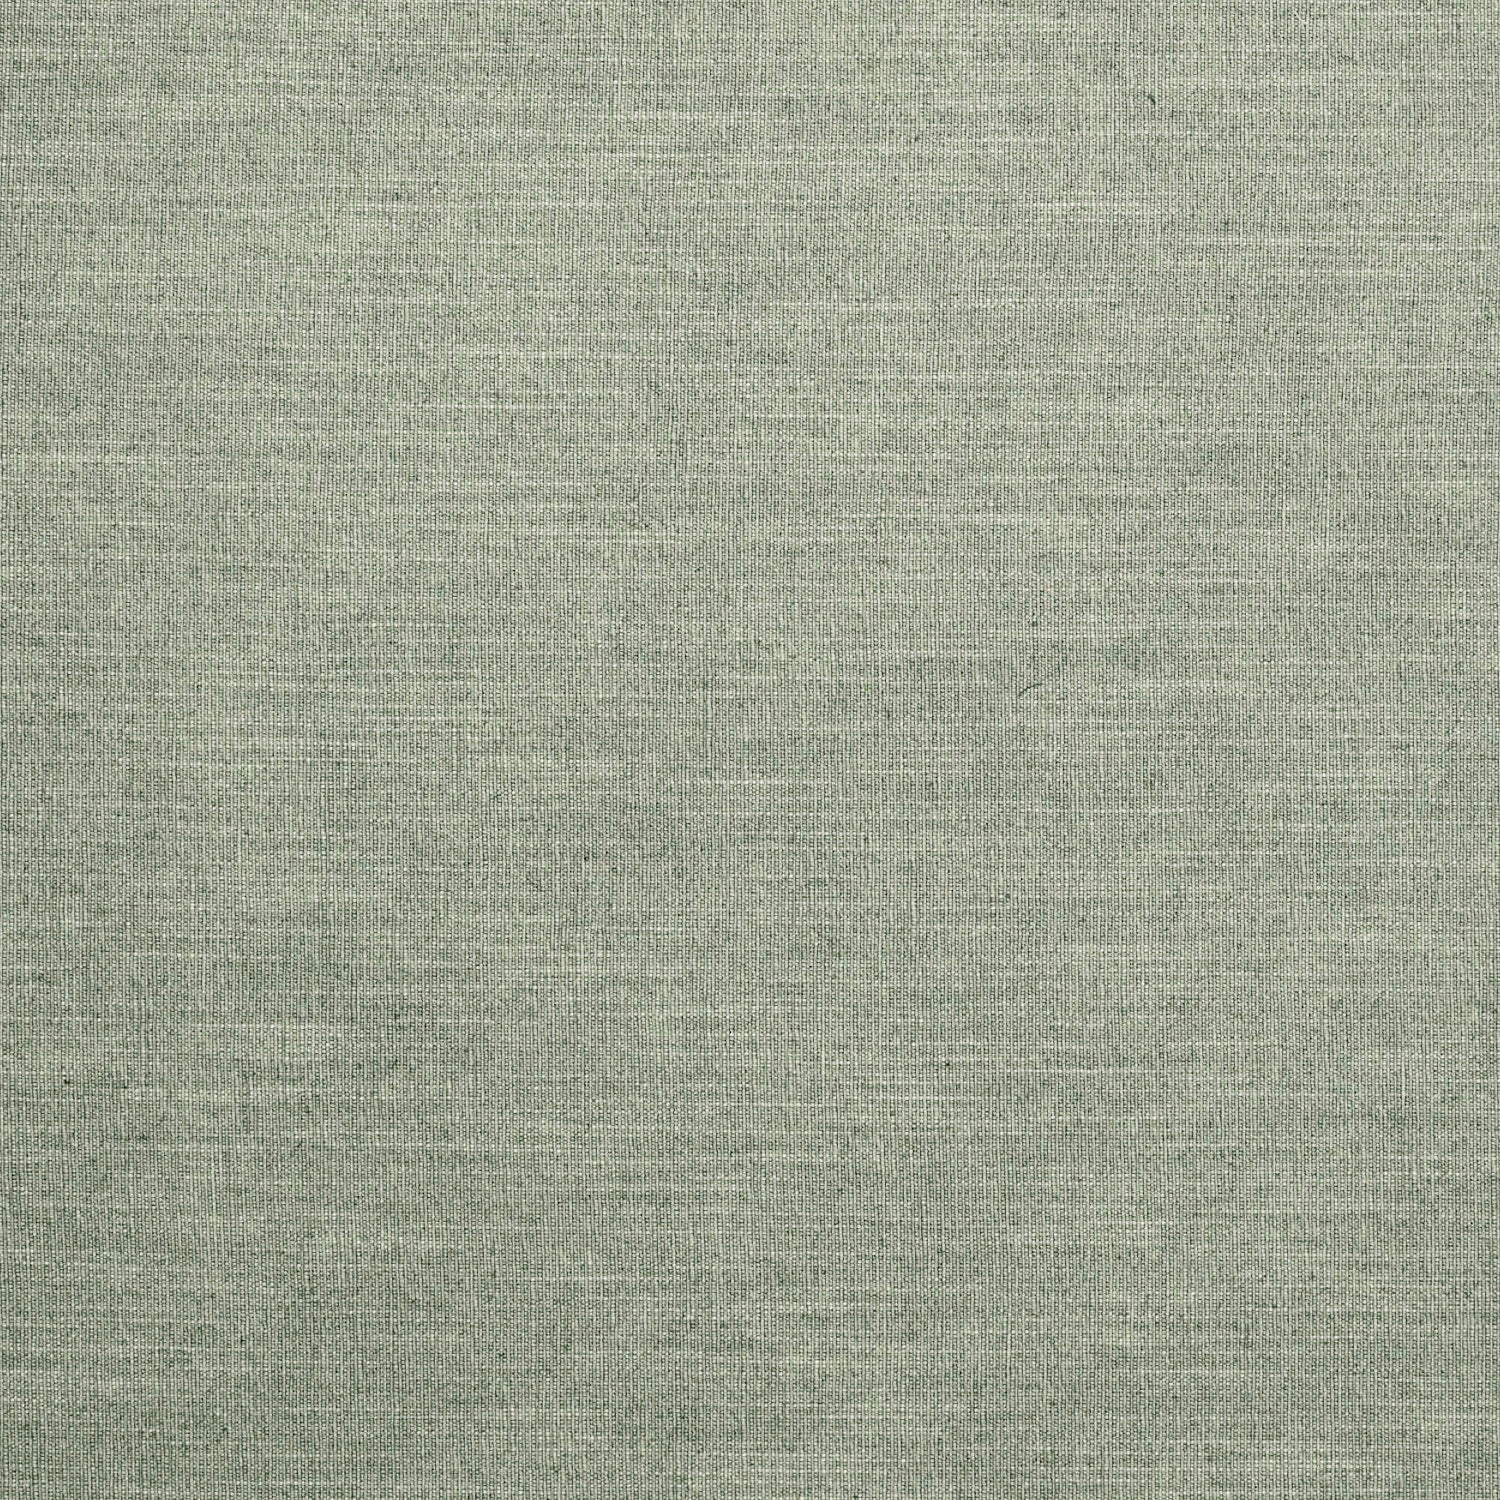 Grey linen mix fabric suitable for domestic and contract use for curtains and upholstery